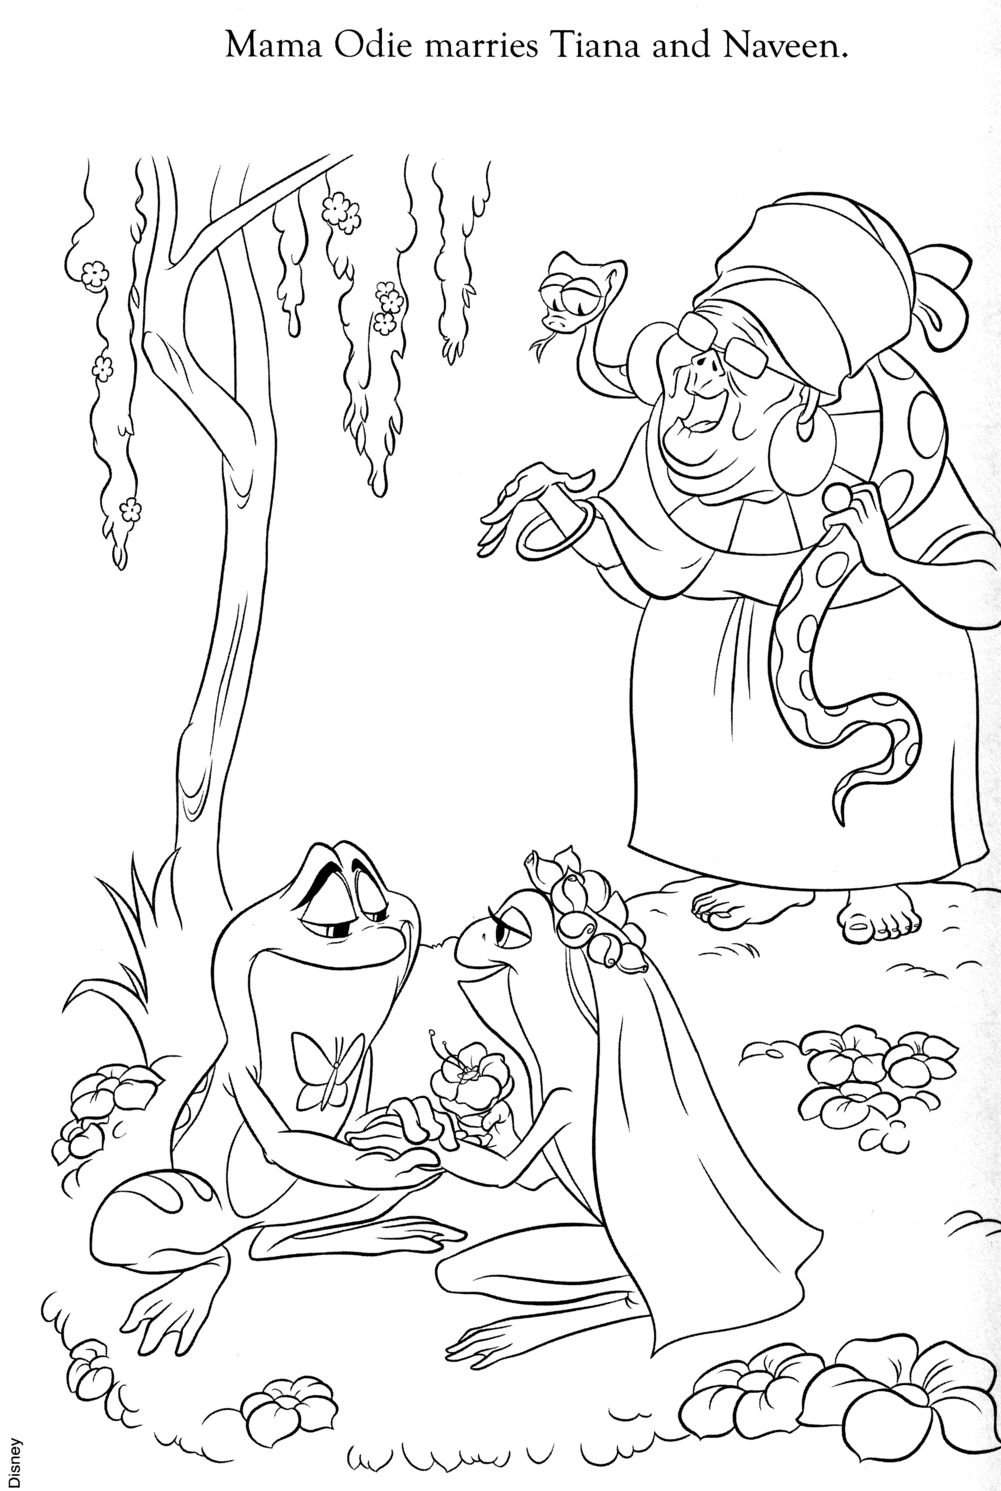 Tiana and Naveen Coloring Pages | tiana And naveen colouring pages ...